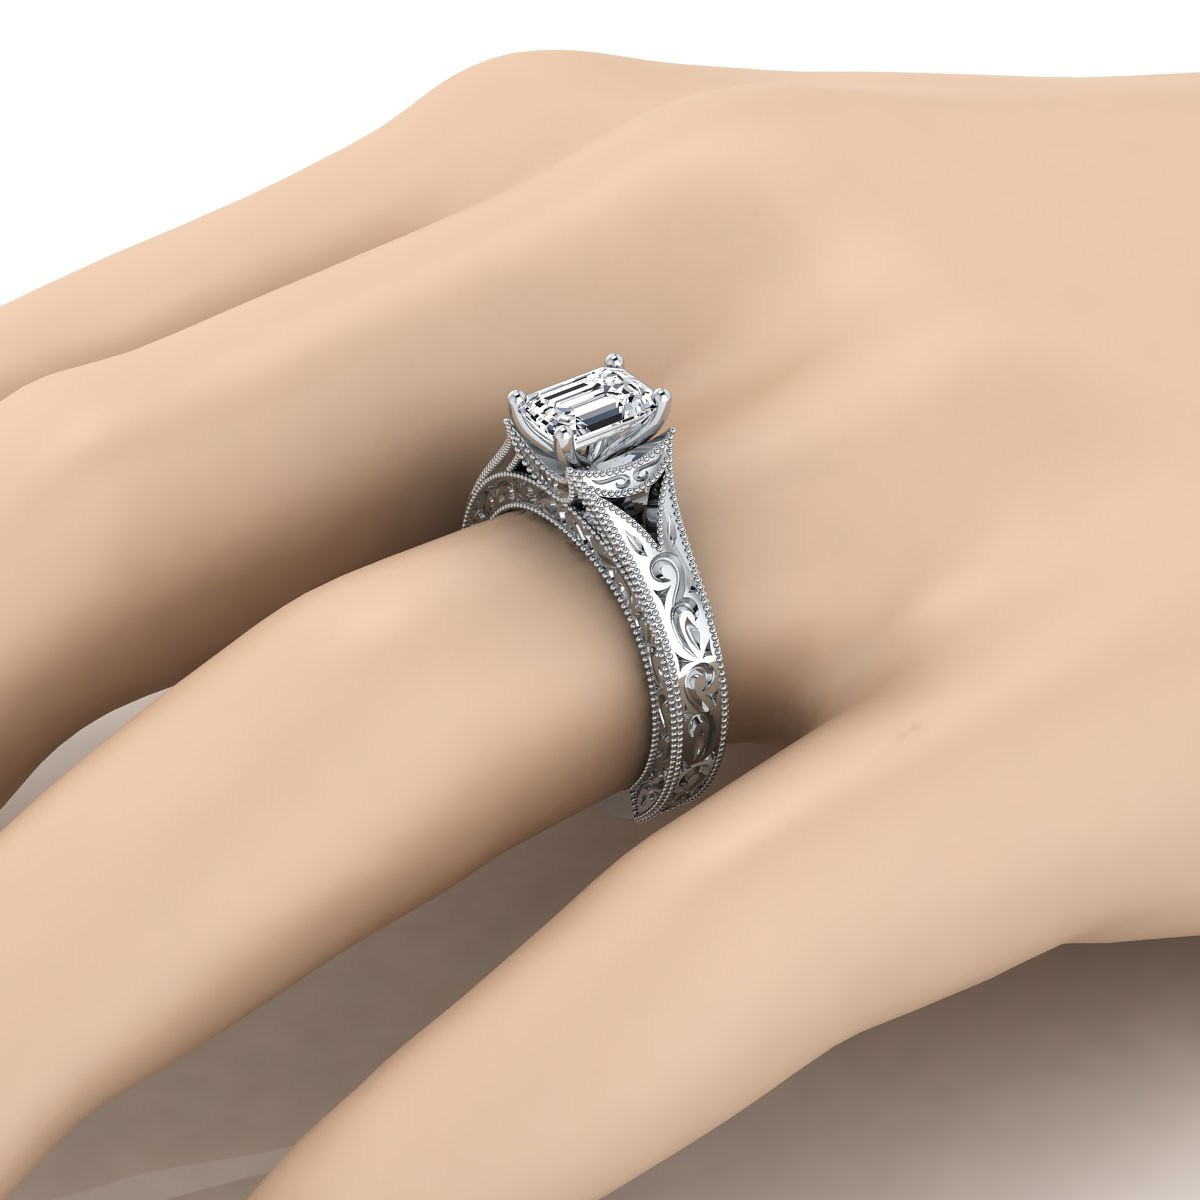 Emerald Cut Antique Inspired Engraved Diamond Engagement Ring With Millgrain Finish In 14k White Gold